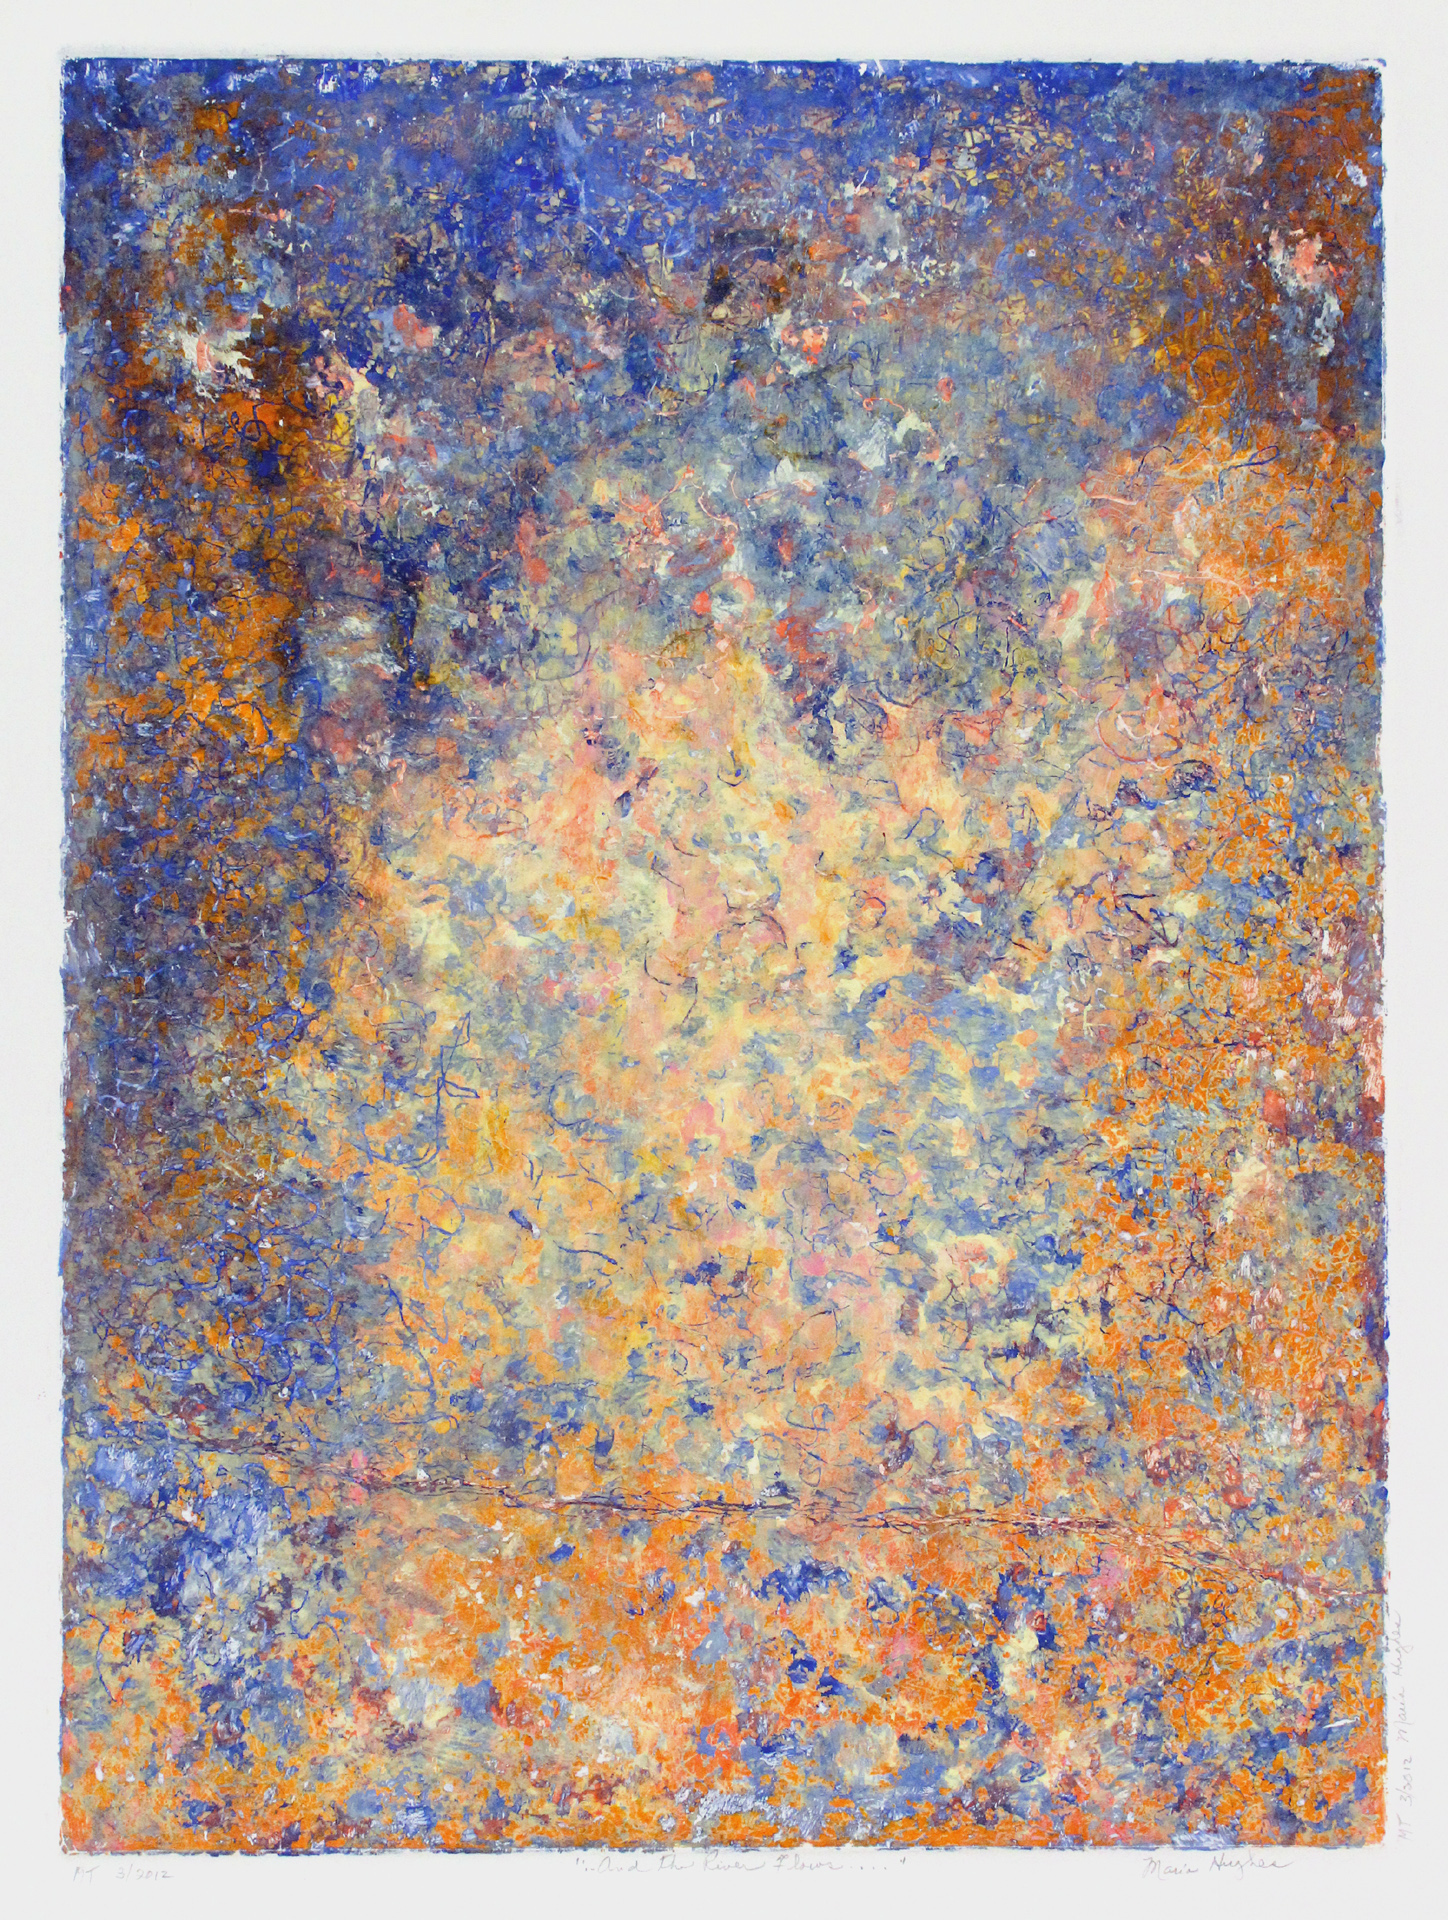 Maria Hughes, As the River Flows, Monotype, 24 x 18 in.